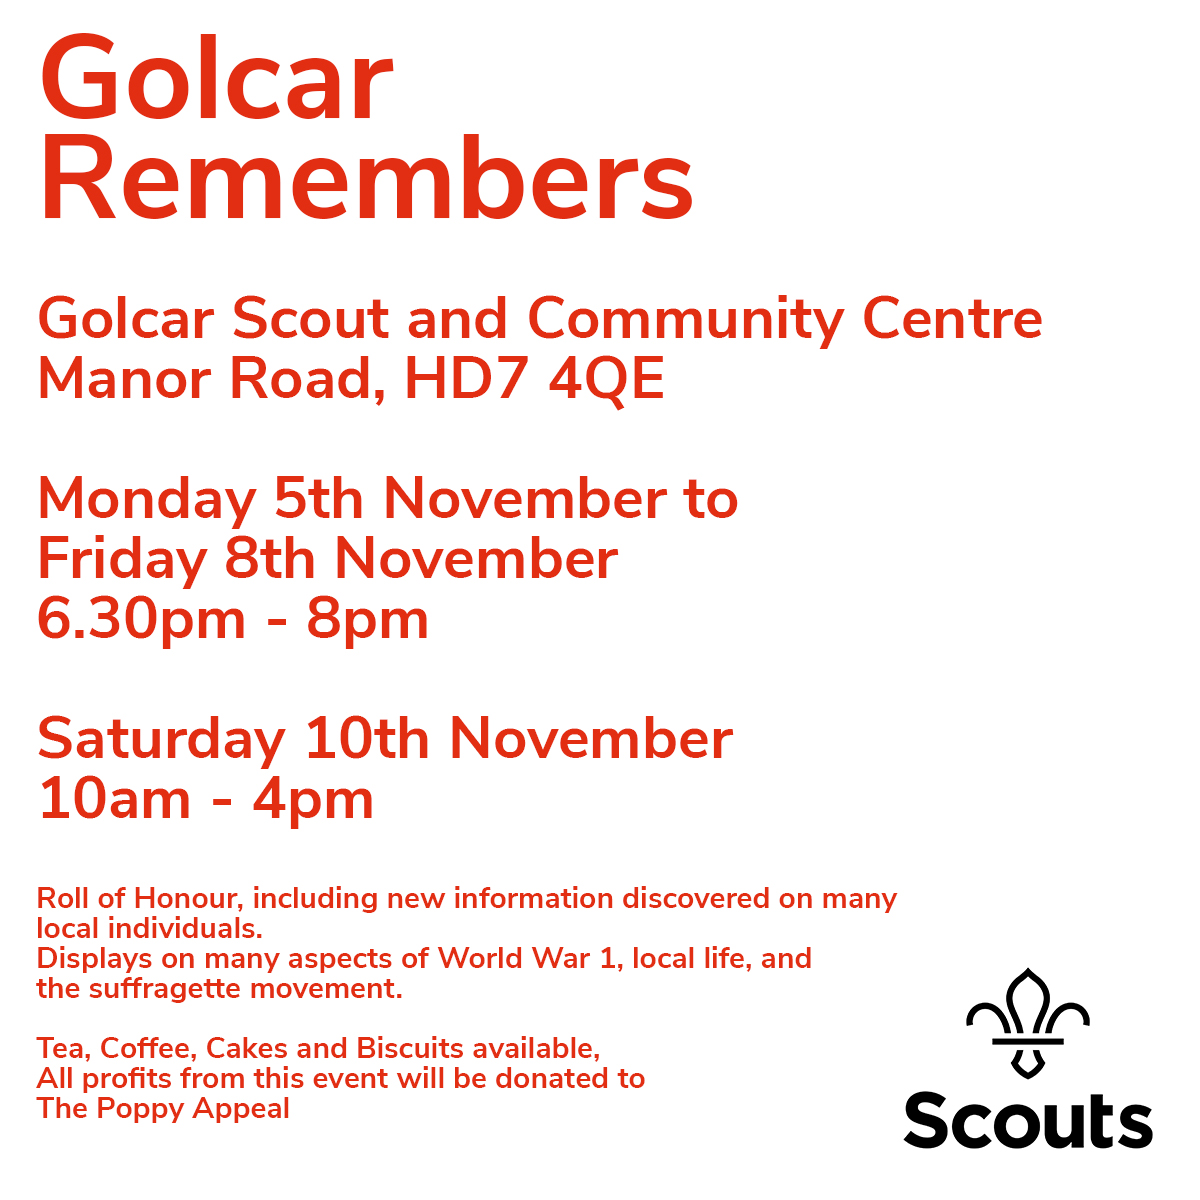 Golcar-Remembers